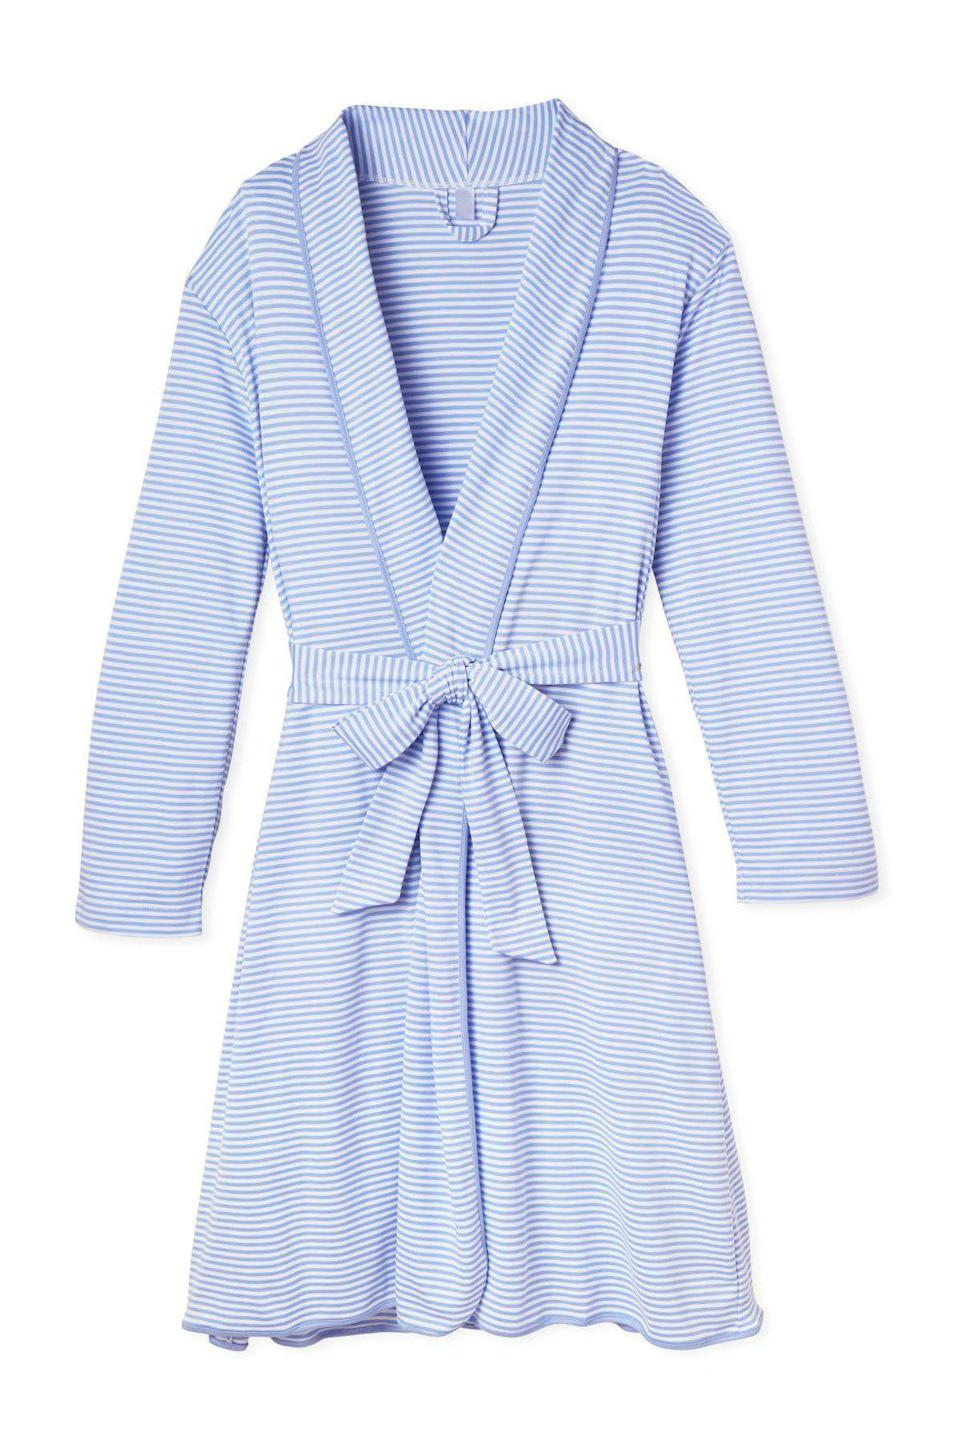 "<p>lakepajamas.com</p><p><strong>$126.00</strong></p><p><a href=""https://go.redirectingat.com?id=74968X1596630&url=https%3A%2F%2Flakepajamas.com%2Fcollections%2Frobes%2Fproducts%2Fhydrangea-robe&sref=https%3A%2F%2Fwww.housebeautiful.com%2Fshopping%2Fg32703475%2Fgifts-for-mother-in-law%2F"" rel=""nofollow noopener"" target=""_blank"" data-ylk=""slk:Shop Now"" class=""link rapid-noclick-resp"">Shop Now</a></p><p>She'll love lounging in this lazy-weekend robe.</p>"